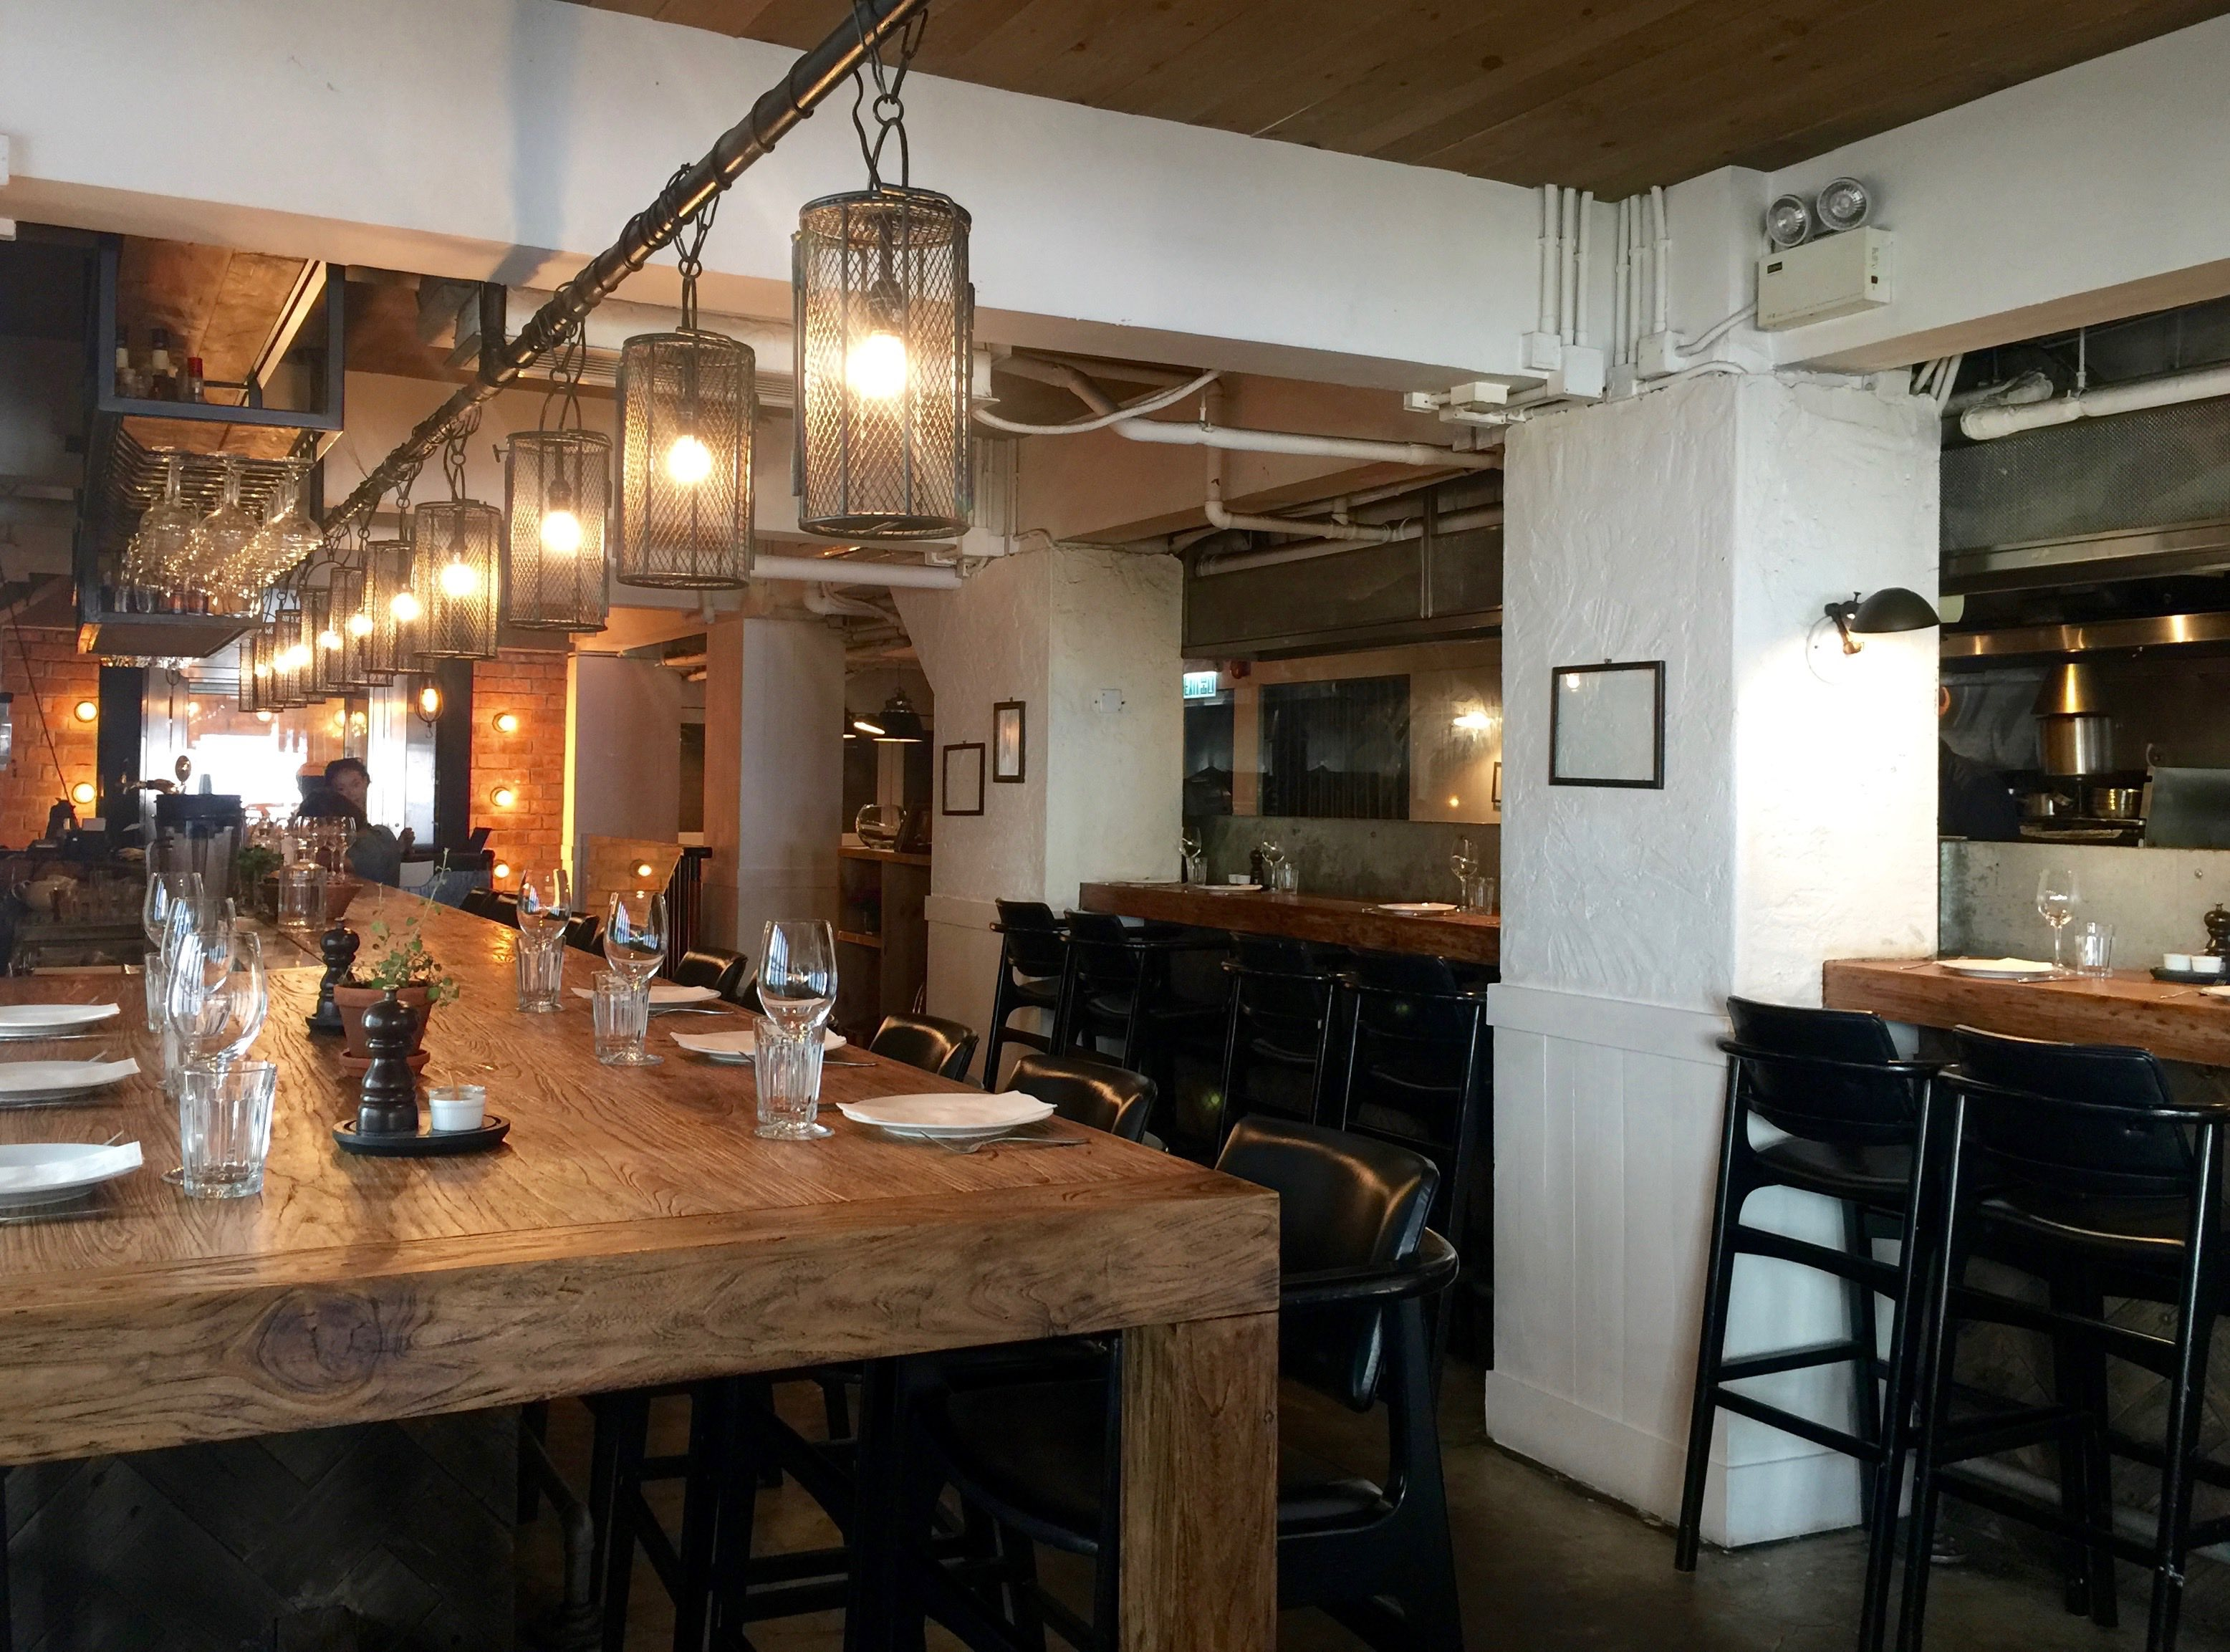 HK Central restaurant for sale with fully equipped kitchen and bar